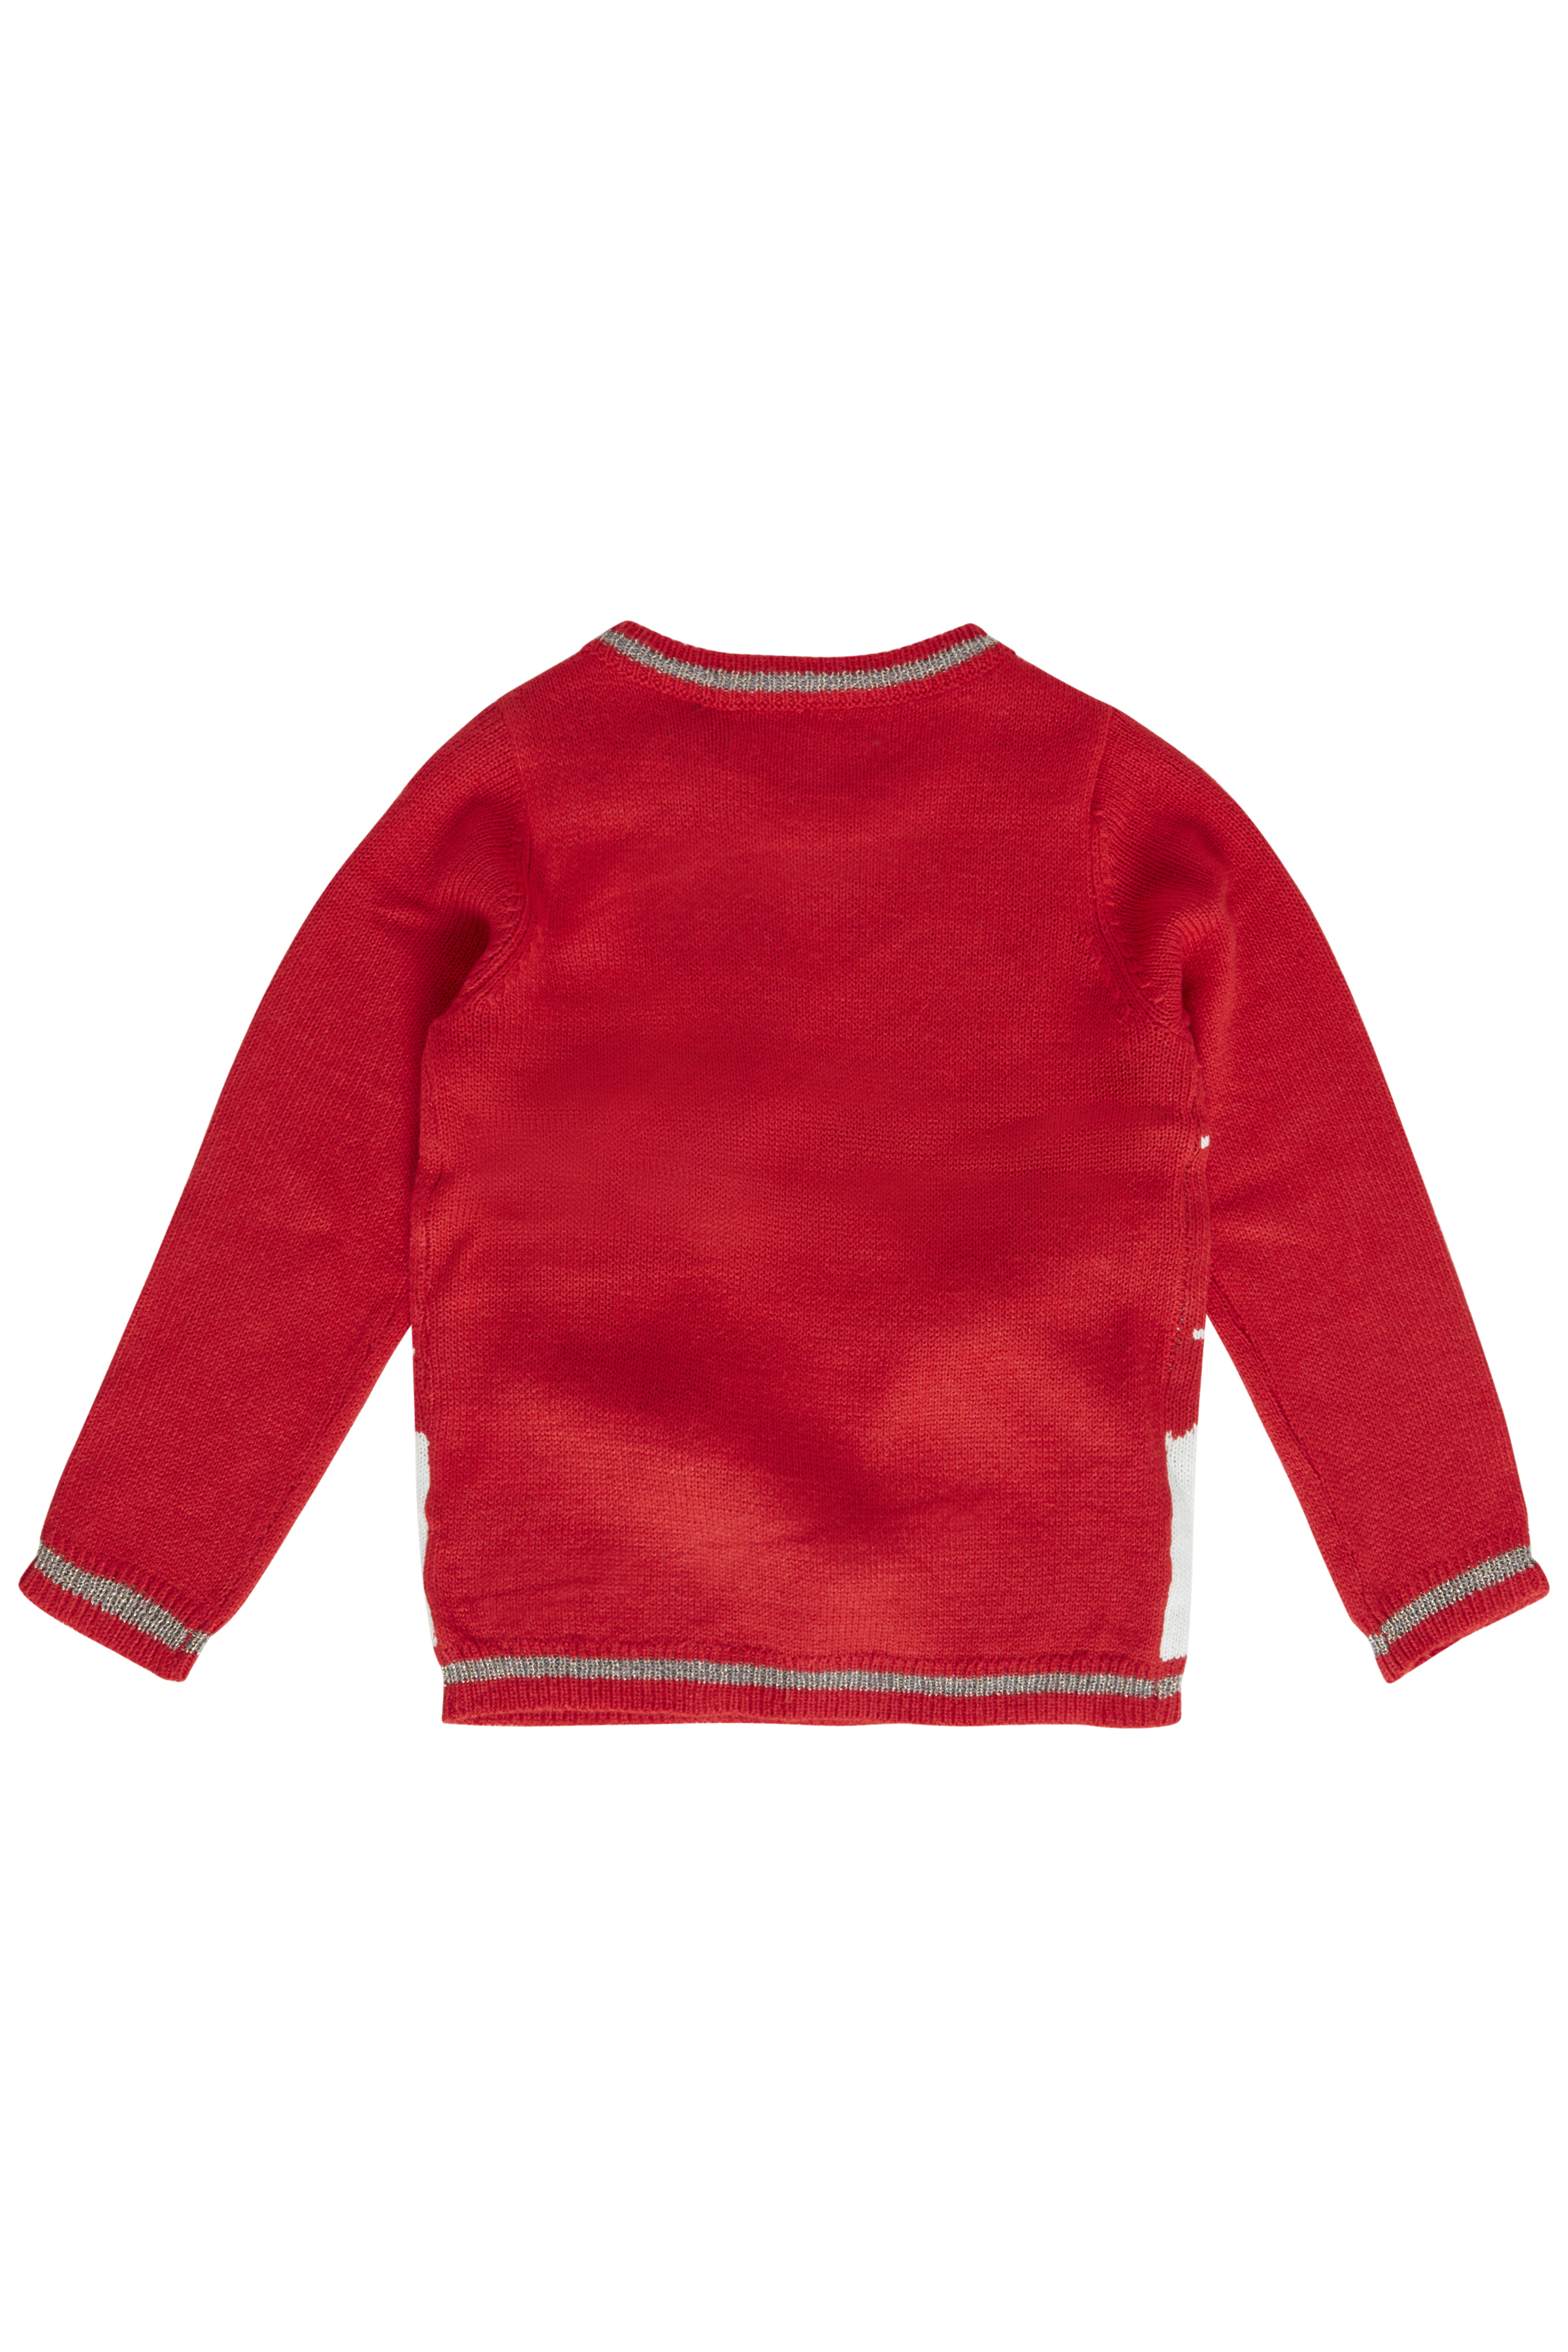 Chinese Red combi 3 Strickpullover von b.young – Kaufen Sie Chinese Red combi 3 Strickpullover aus Größe 92-134/140 hier